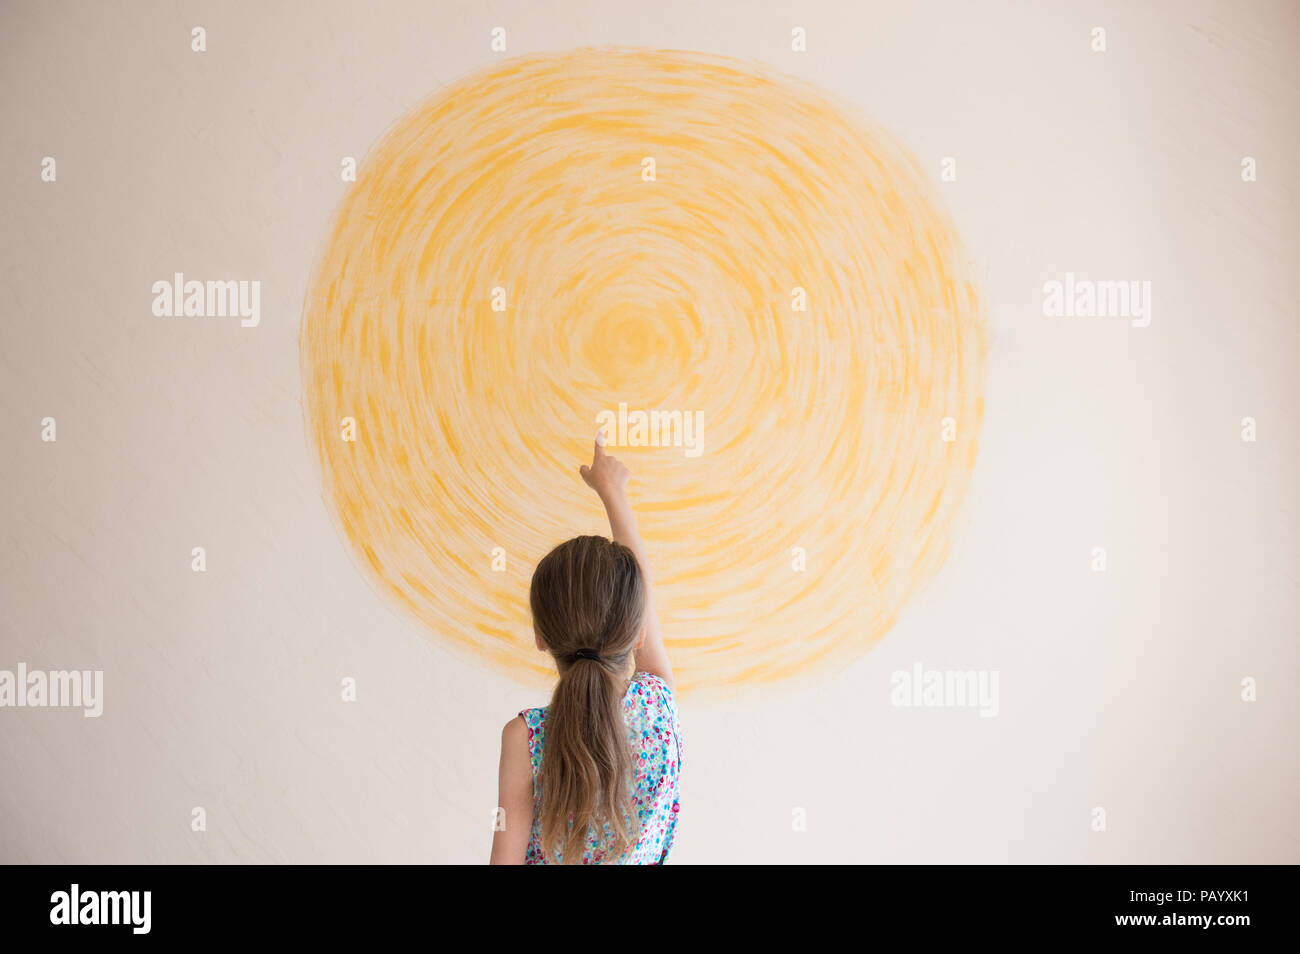 little girl pointing finger at yellow sun painted on wall indoors - Stock Image